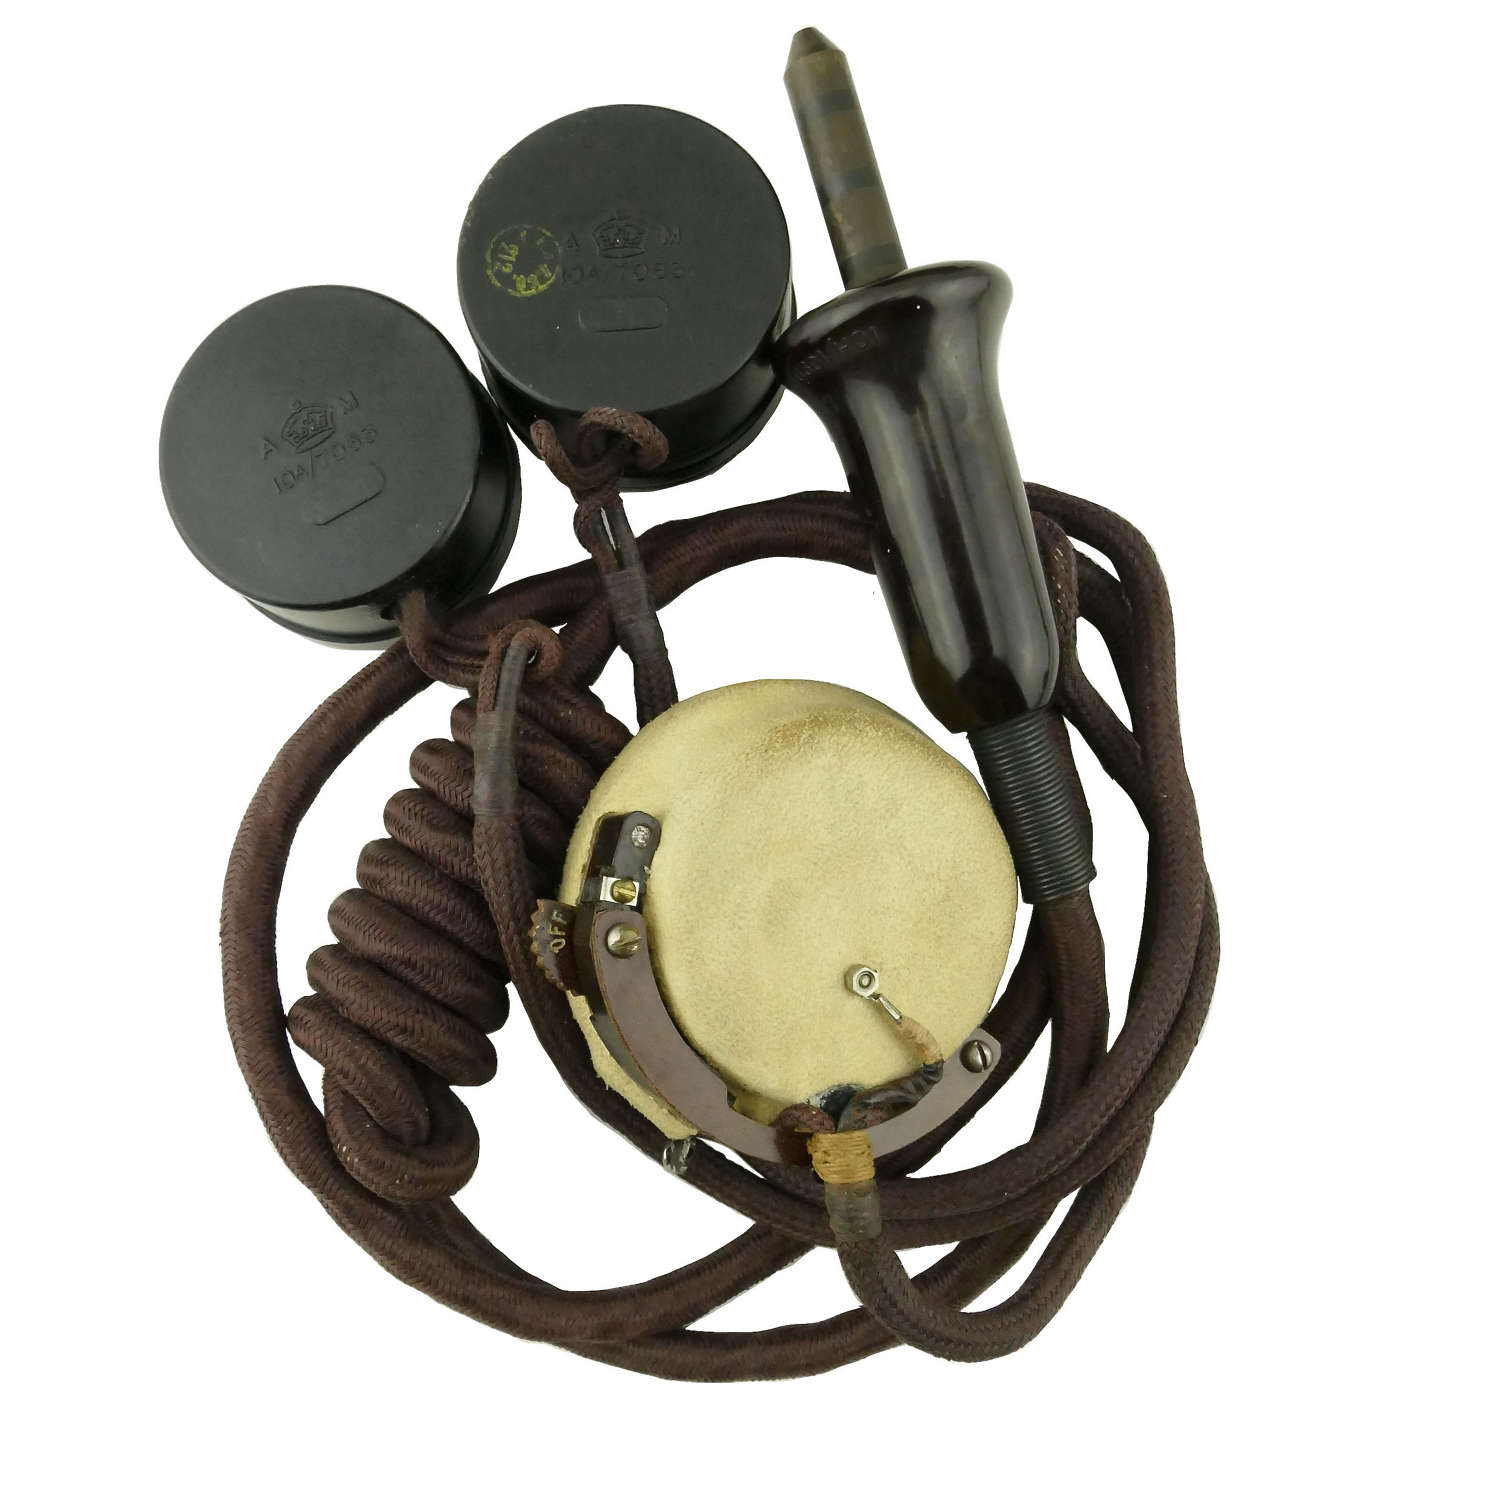 RAF type 19 microphone assembly